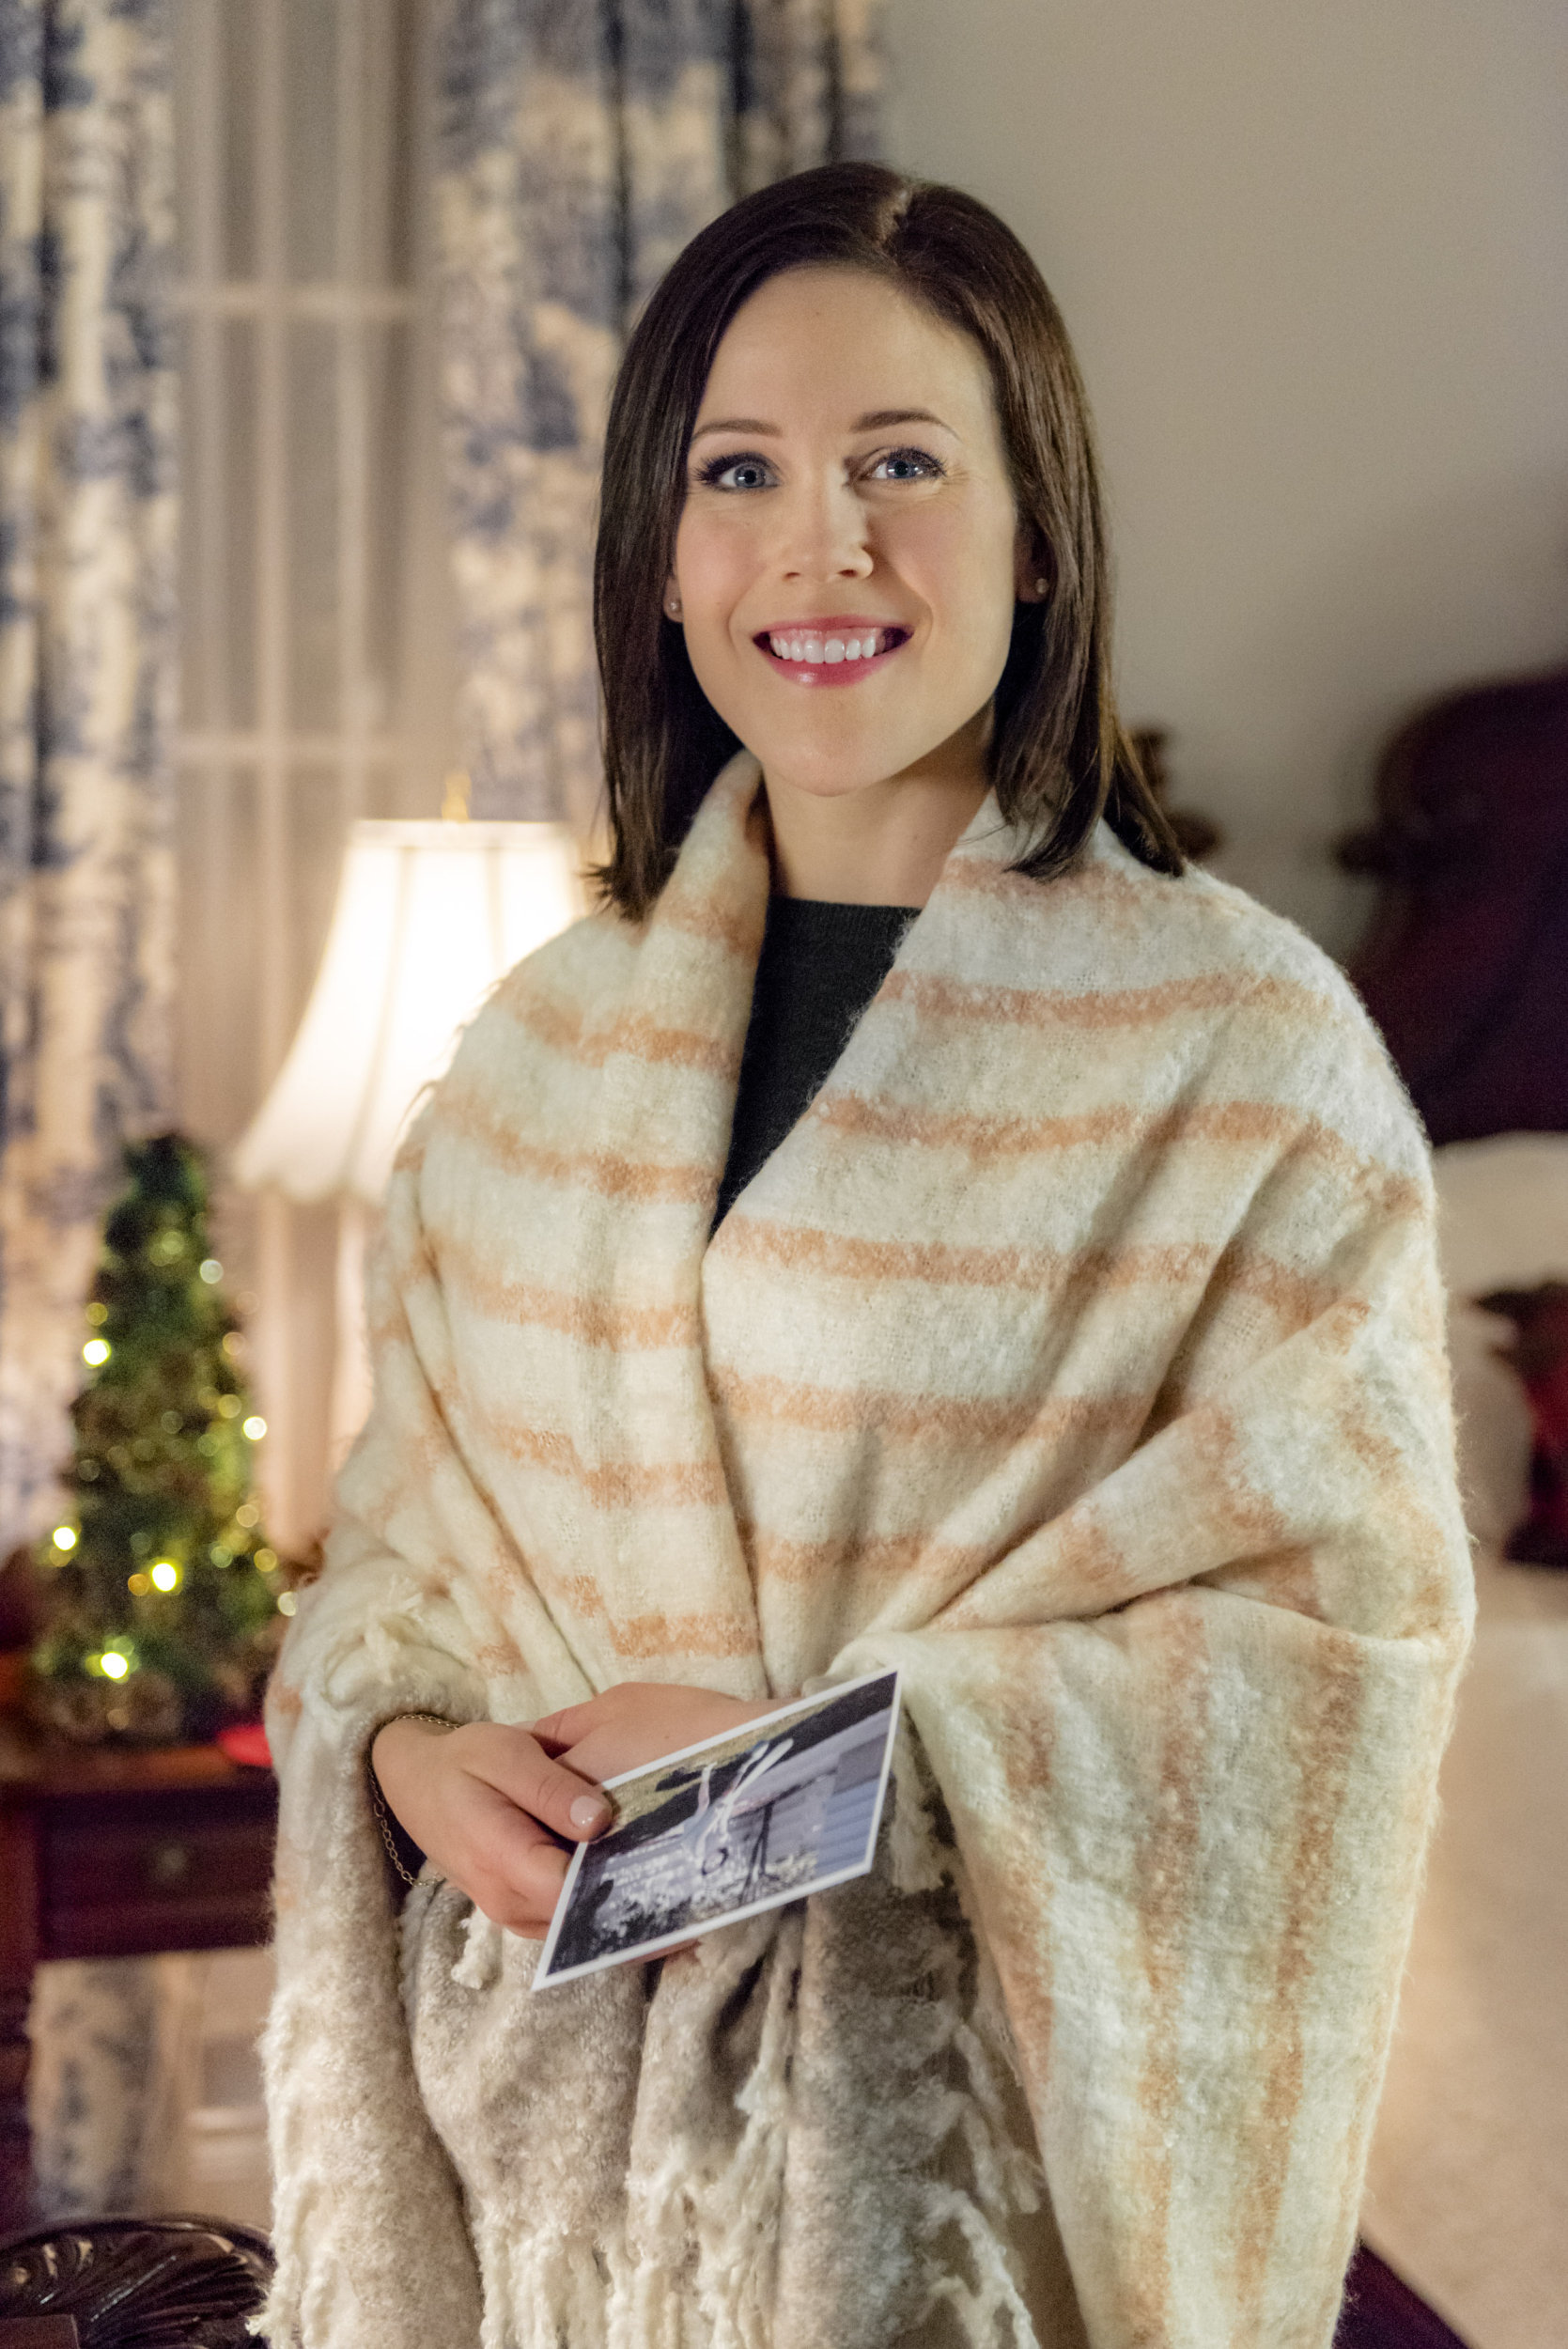 Marrying Father Christmas 2020 Erin Krakow as Miranda on Marrying Father Christmas